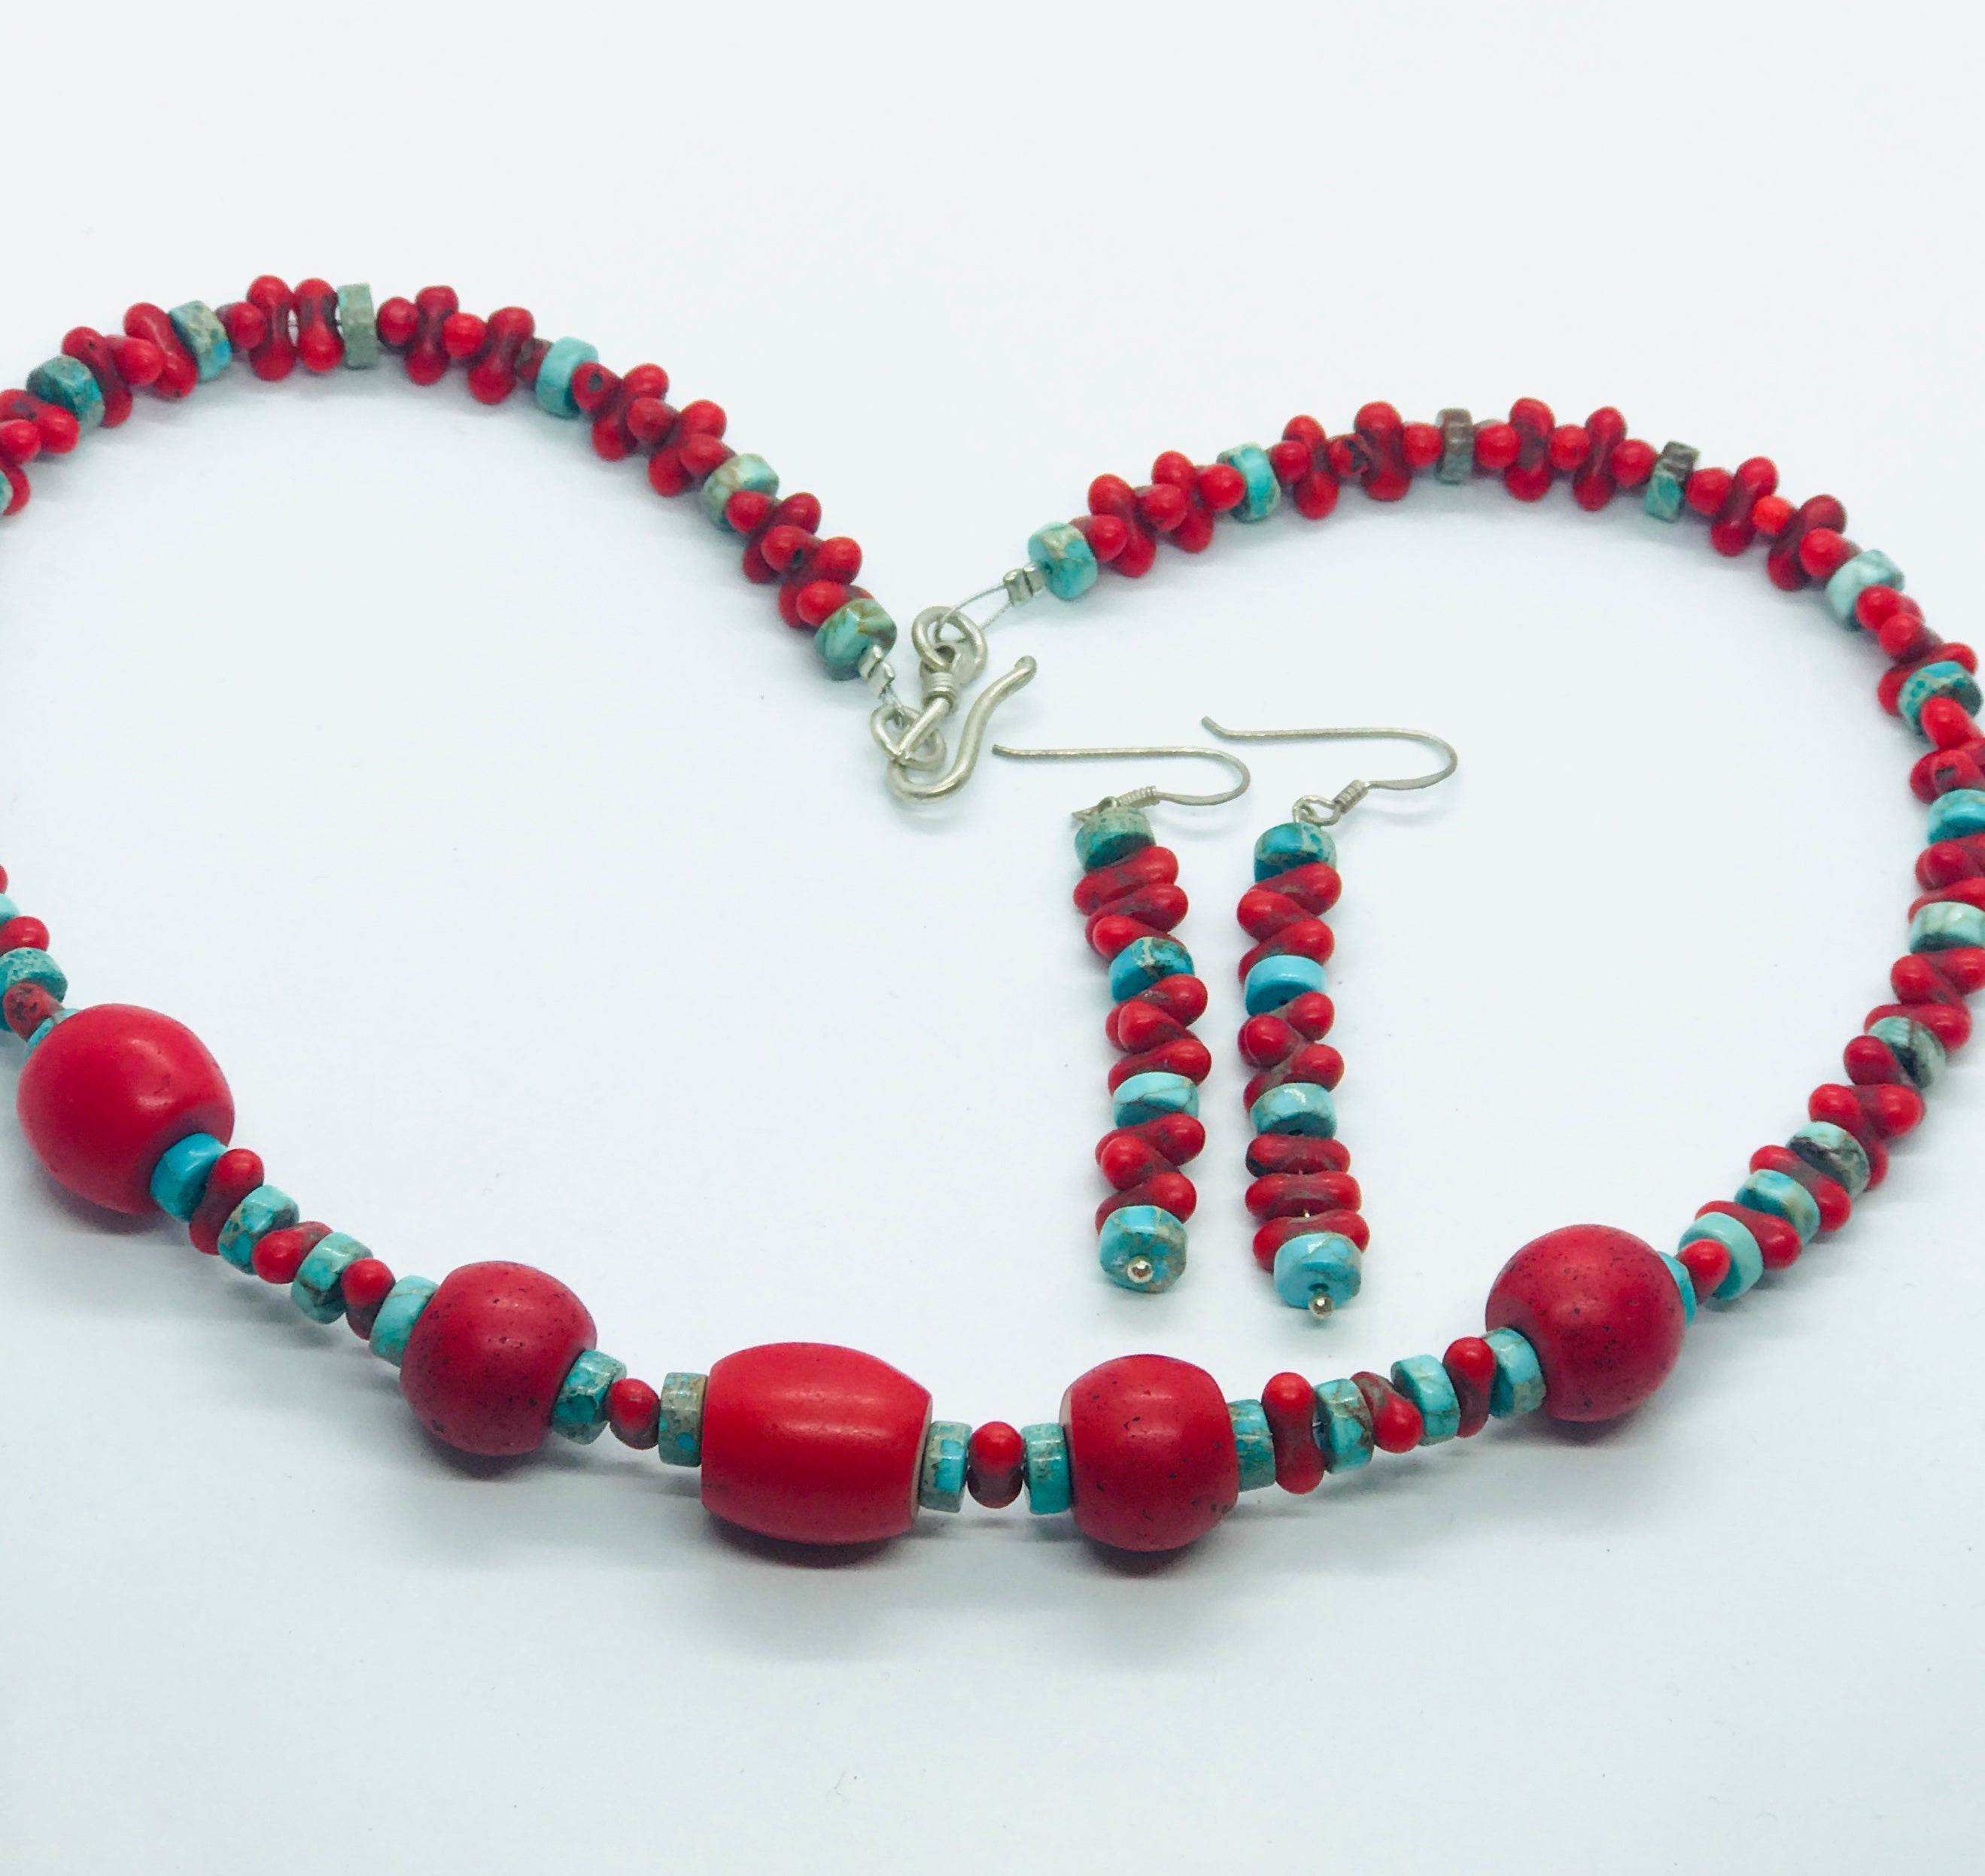 Antique Mountain Coral and Turquoise Beads